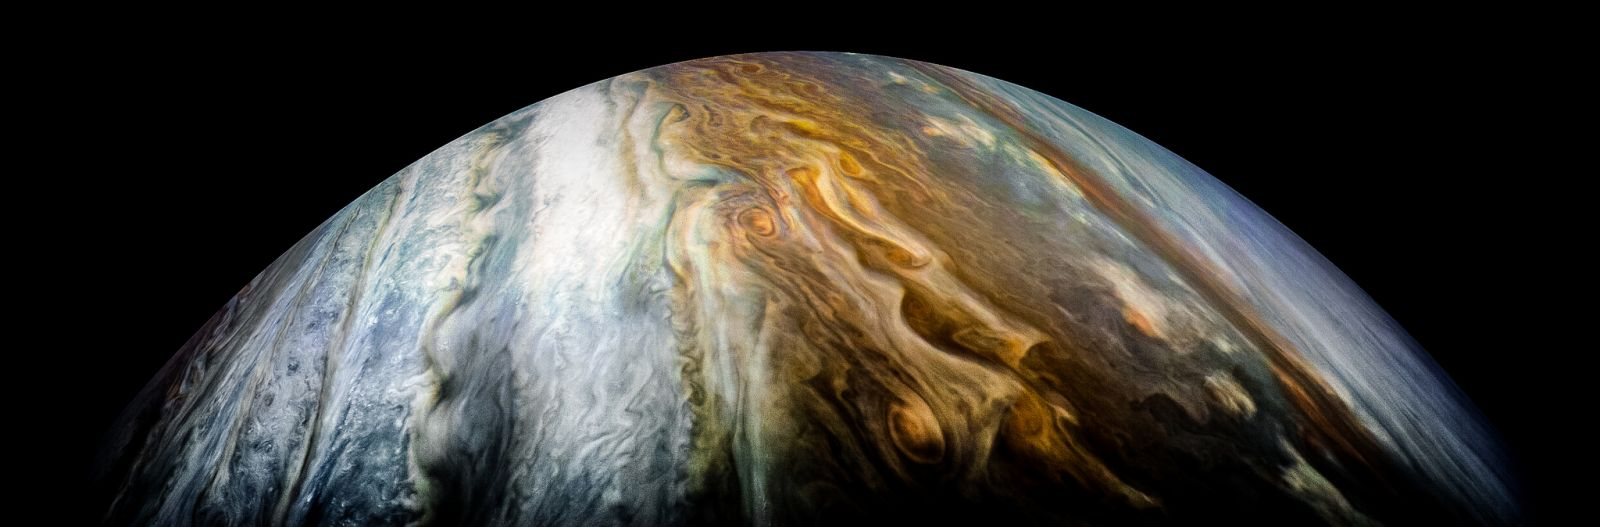 Jupiter's South Tropical Zone seen during Juno Perijove 10 on Dec. 16 2017. Photo Credit: Kevin Gill / NASA / JPL-Caltech / SwRI / MSSS